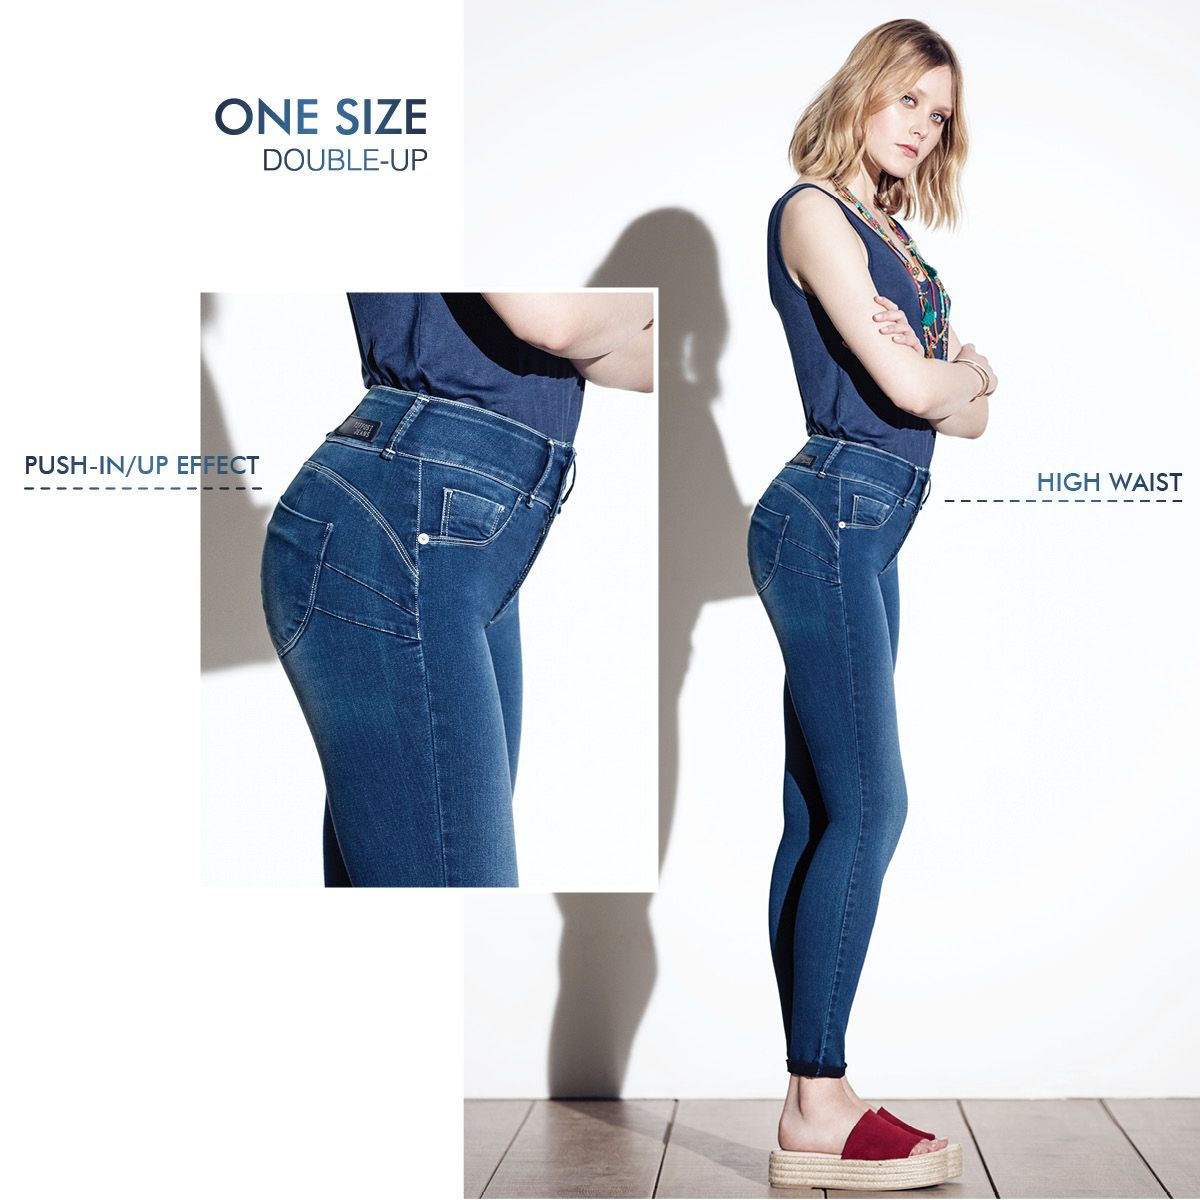 18d37bb6db4 One Size Double Up  tiffosi  tiffosidenim  jeans  onesize  doubleup   highwaist  pushin  pushup  onesizefitsall